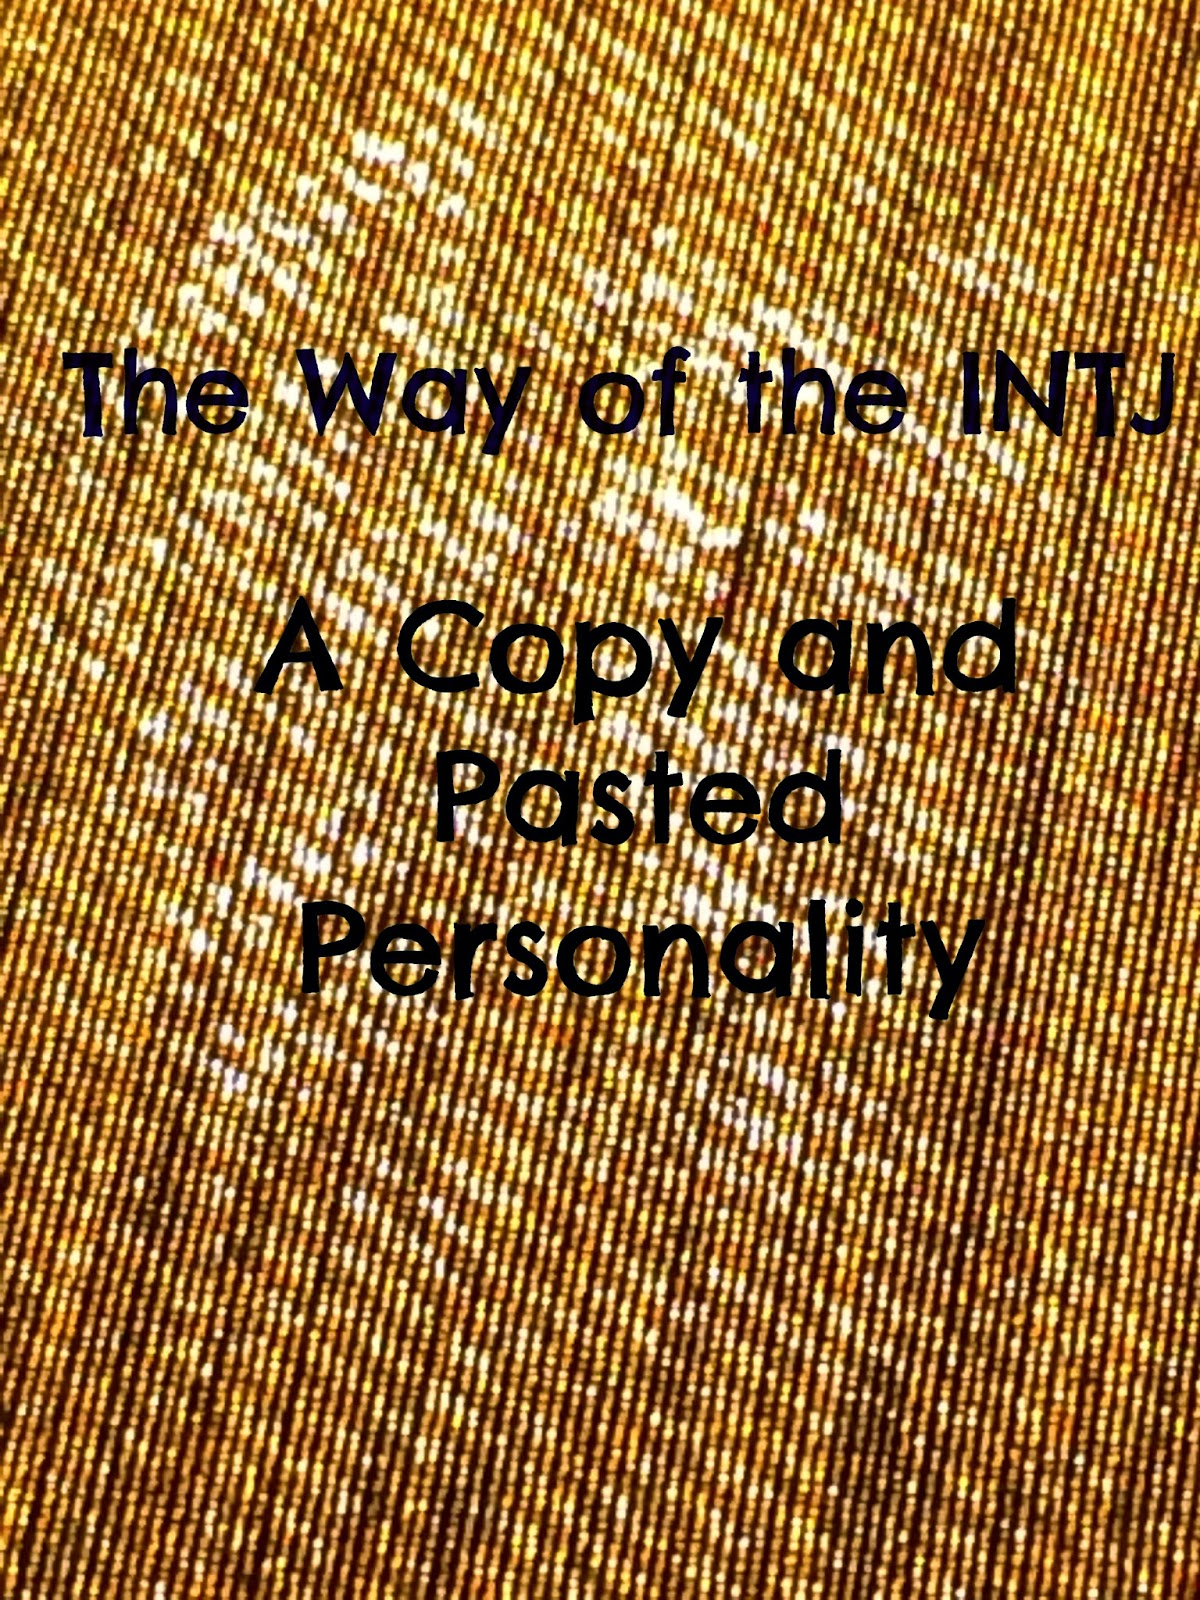 Intj Definition Of Personality Equals: The Way Of The INTJ: Copy And Pasted Personality